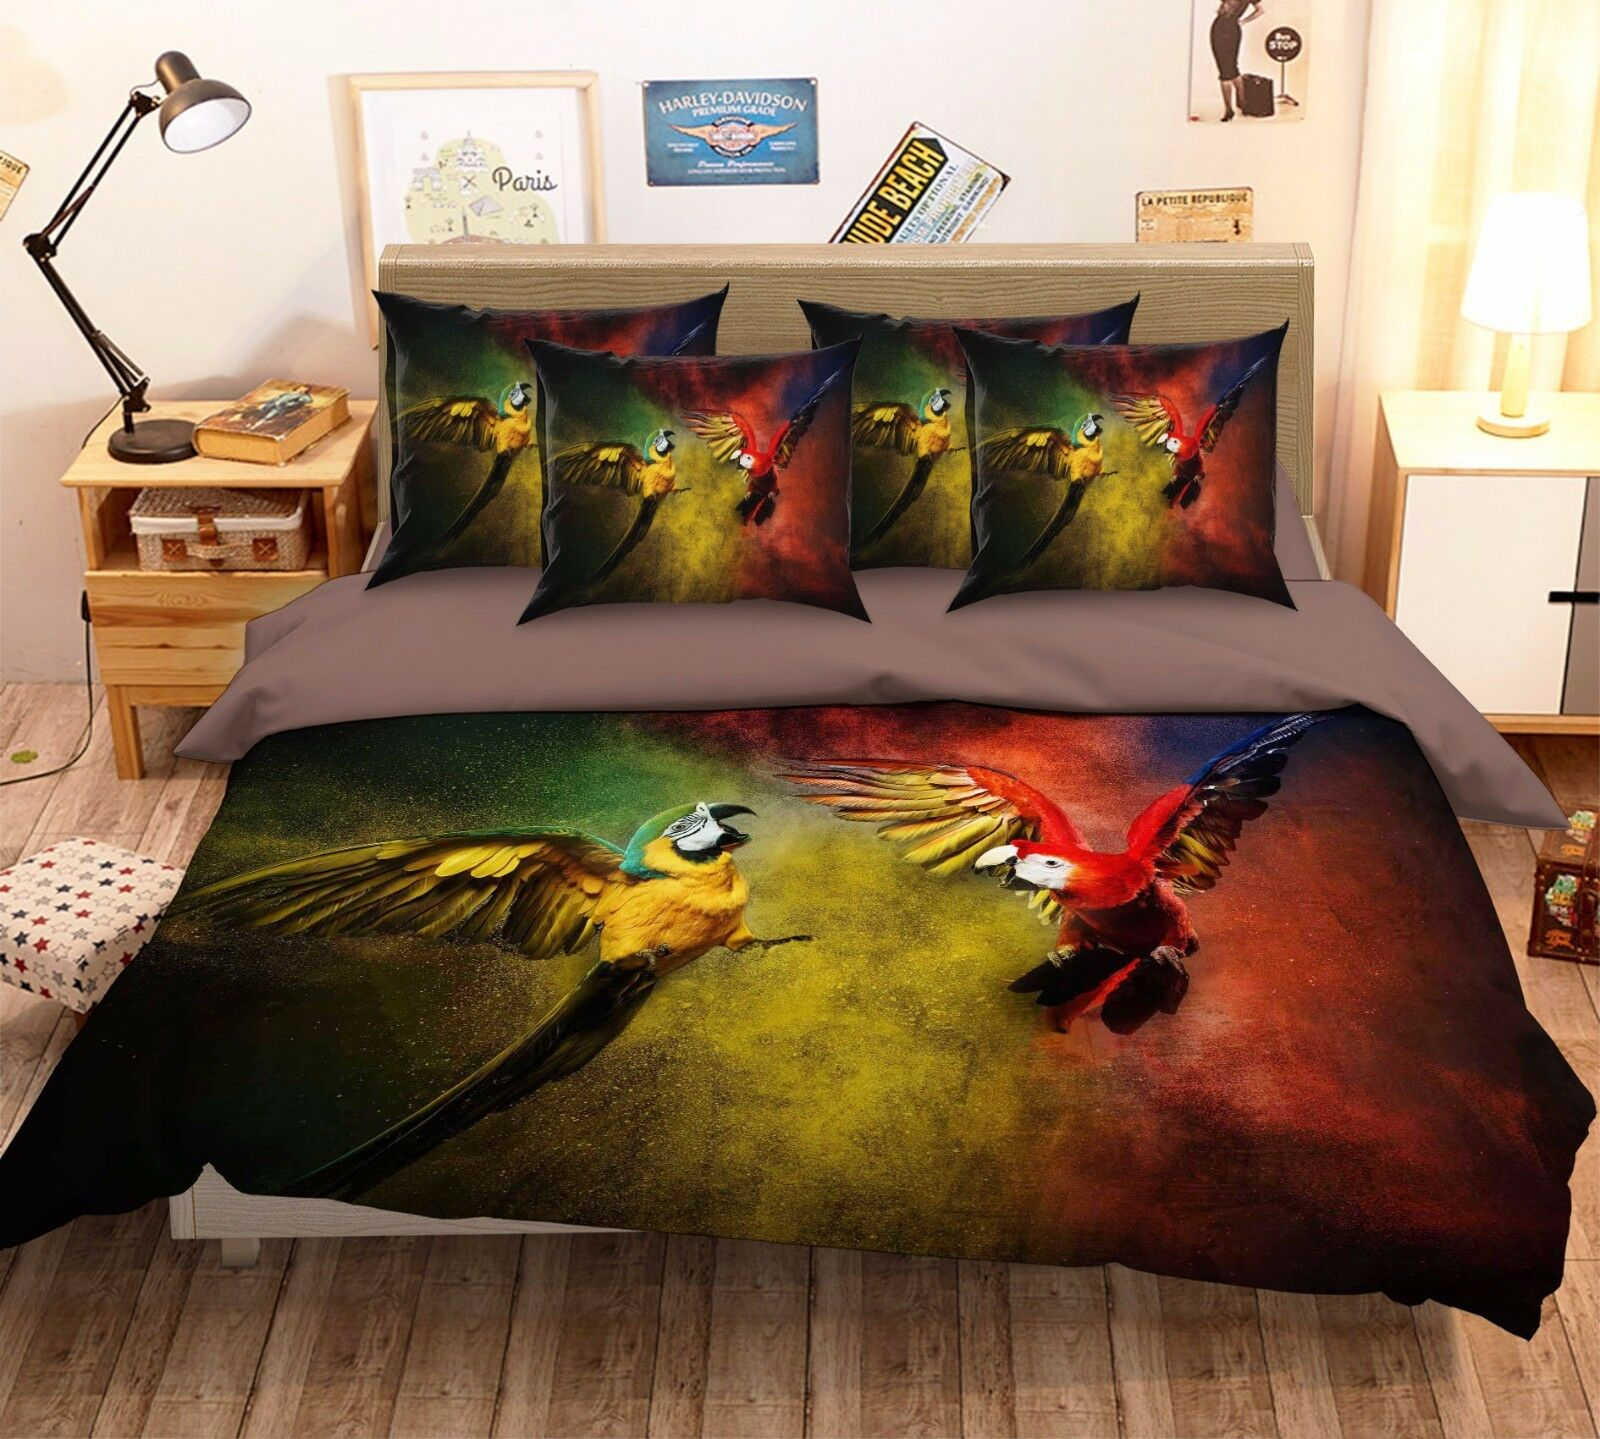 3D Fly Parrots 2 Bed Pillowcases Quilt Duvet Cover Set Single Queen King Größe AU